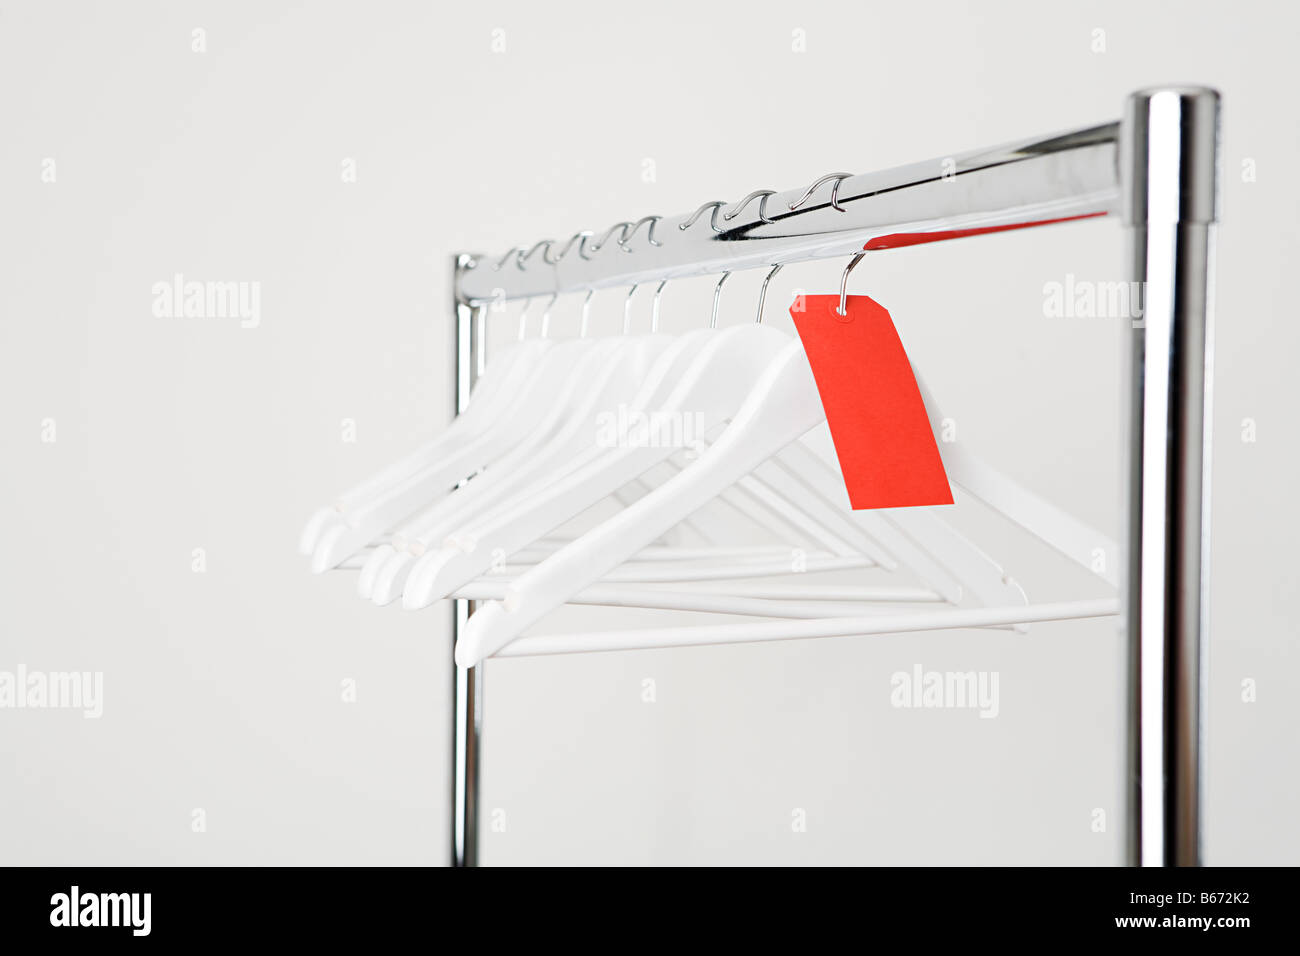 Empty clothes hangers on a rail - Stock Image